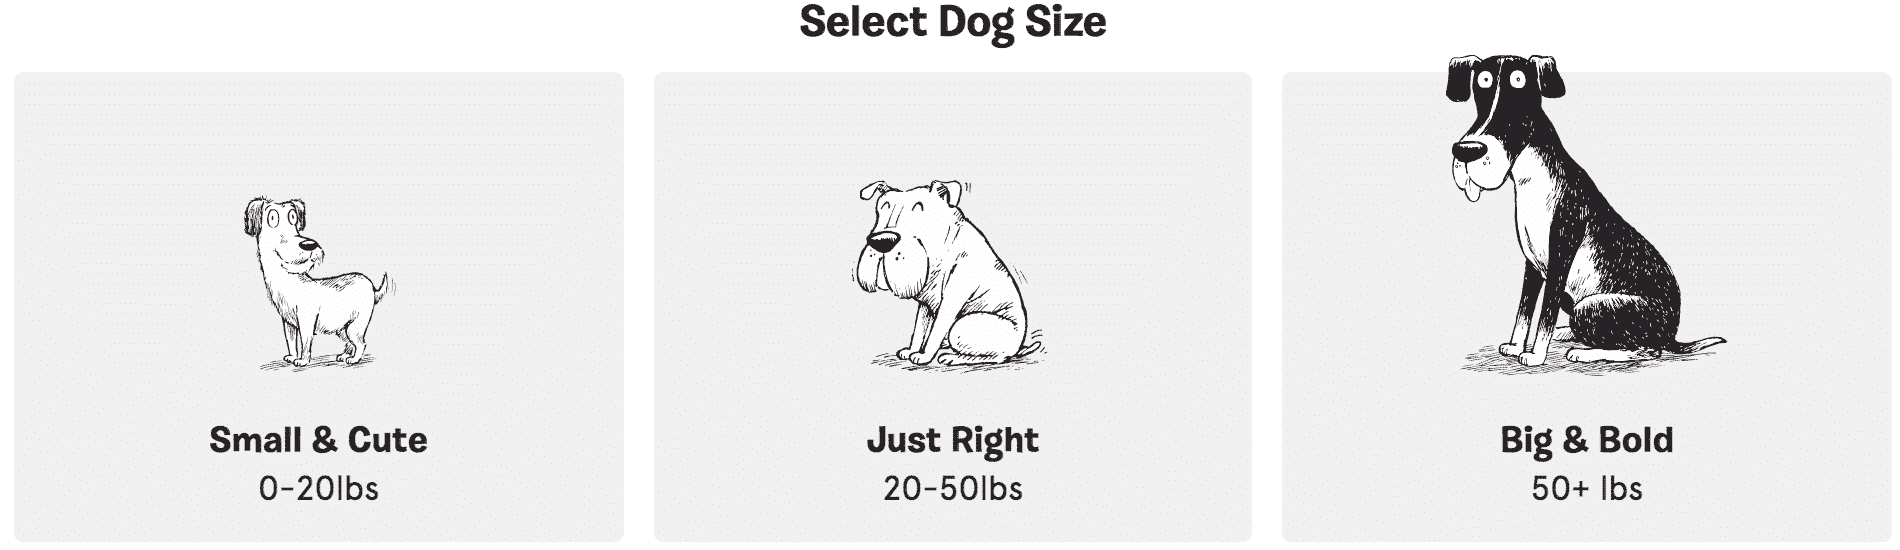 bark box dog size